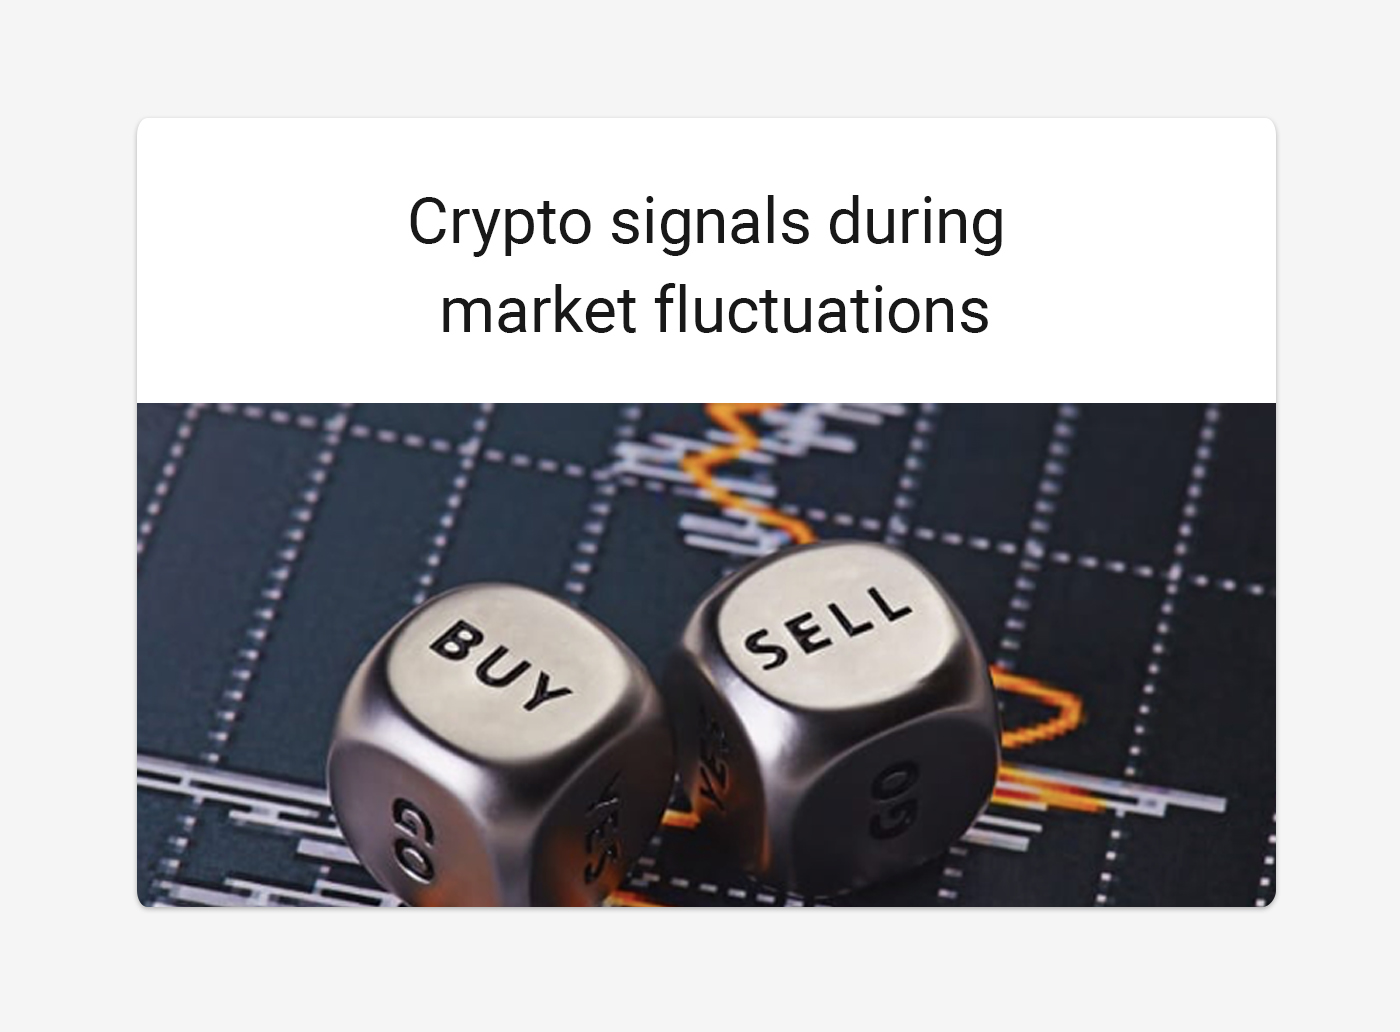 Binance crypto signals during market fluctuations